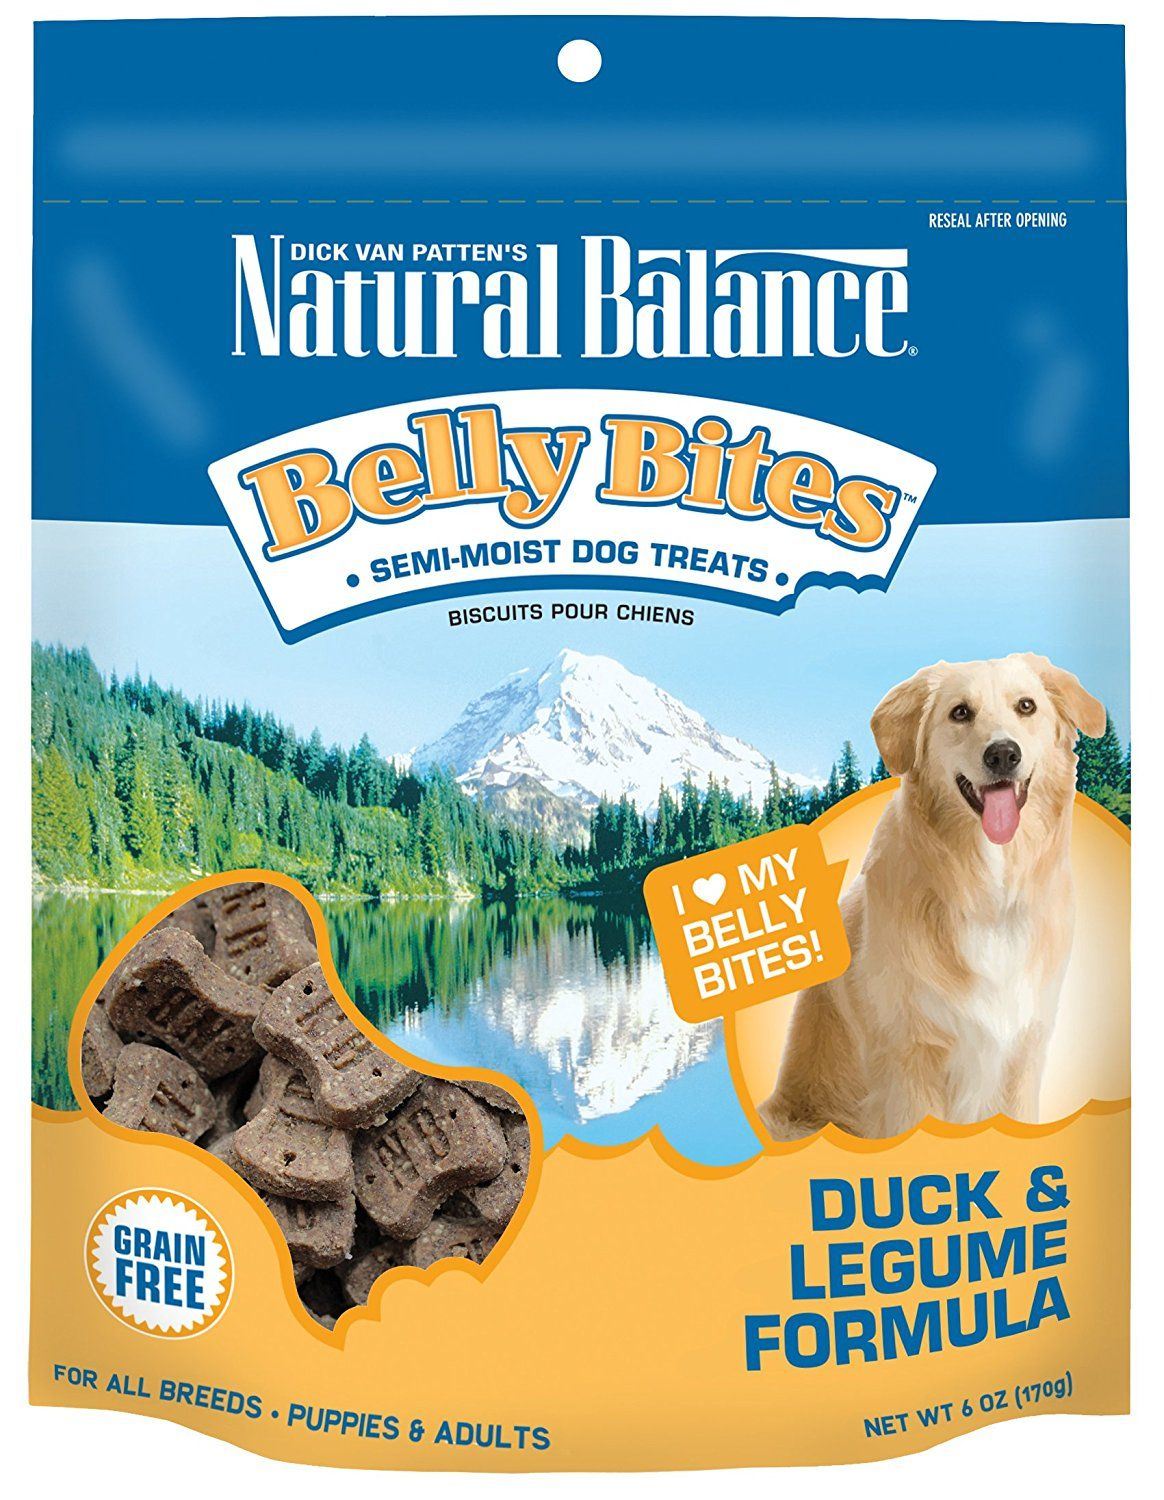 Natural Balance Belly Bites Dog Treats You Can Get More Details Here This Is An Amazon A Chicken Dog Treats Grain Free Dog